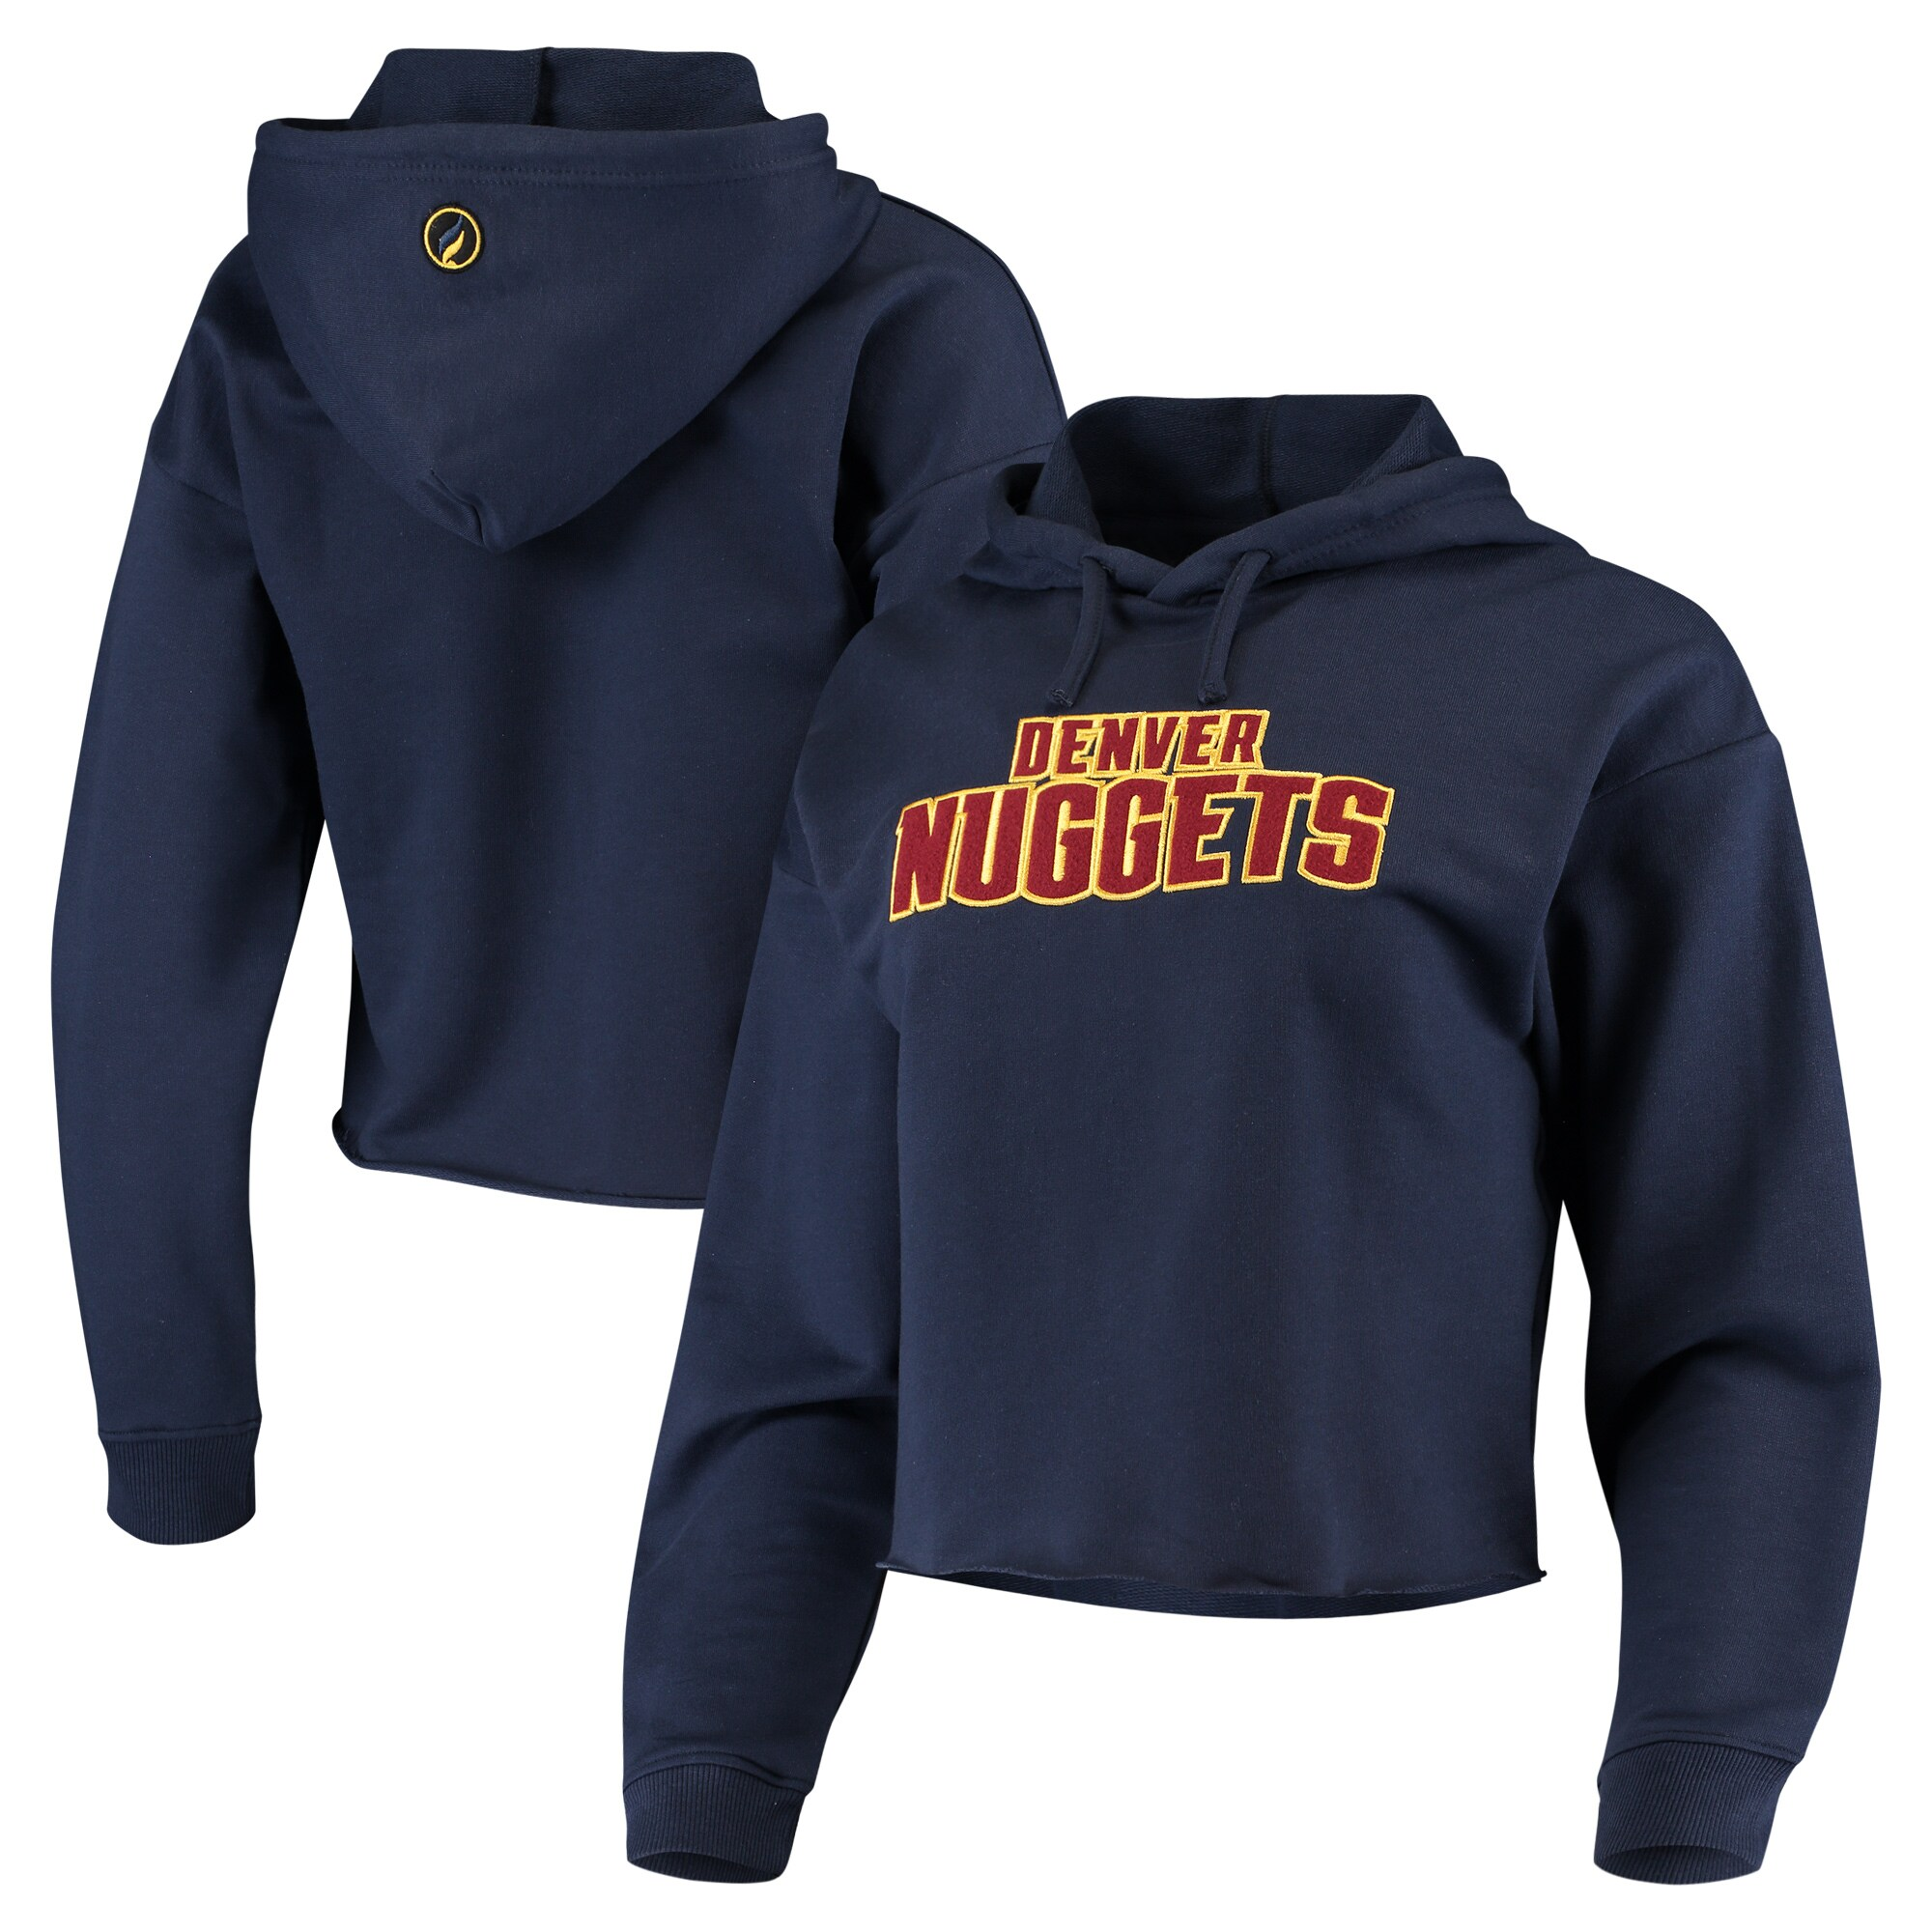 Denver Nuggets Women's Velour Cropped Pullover Hoodie - Navy